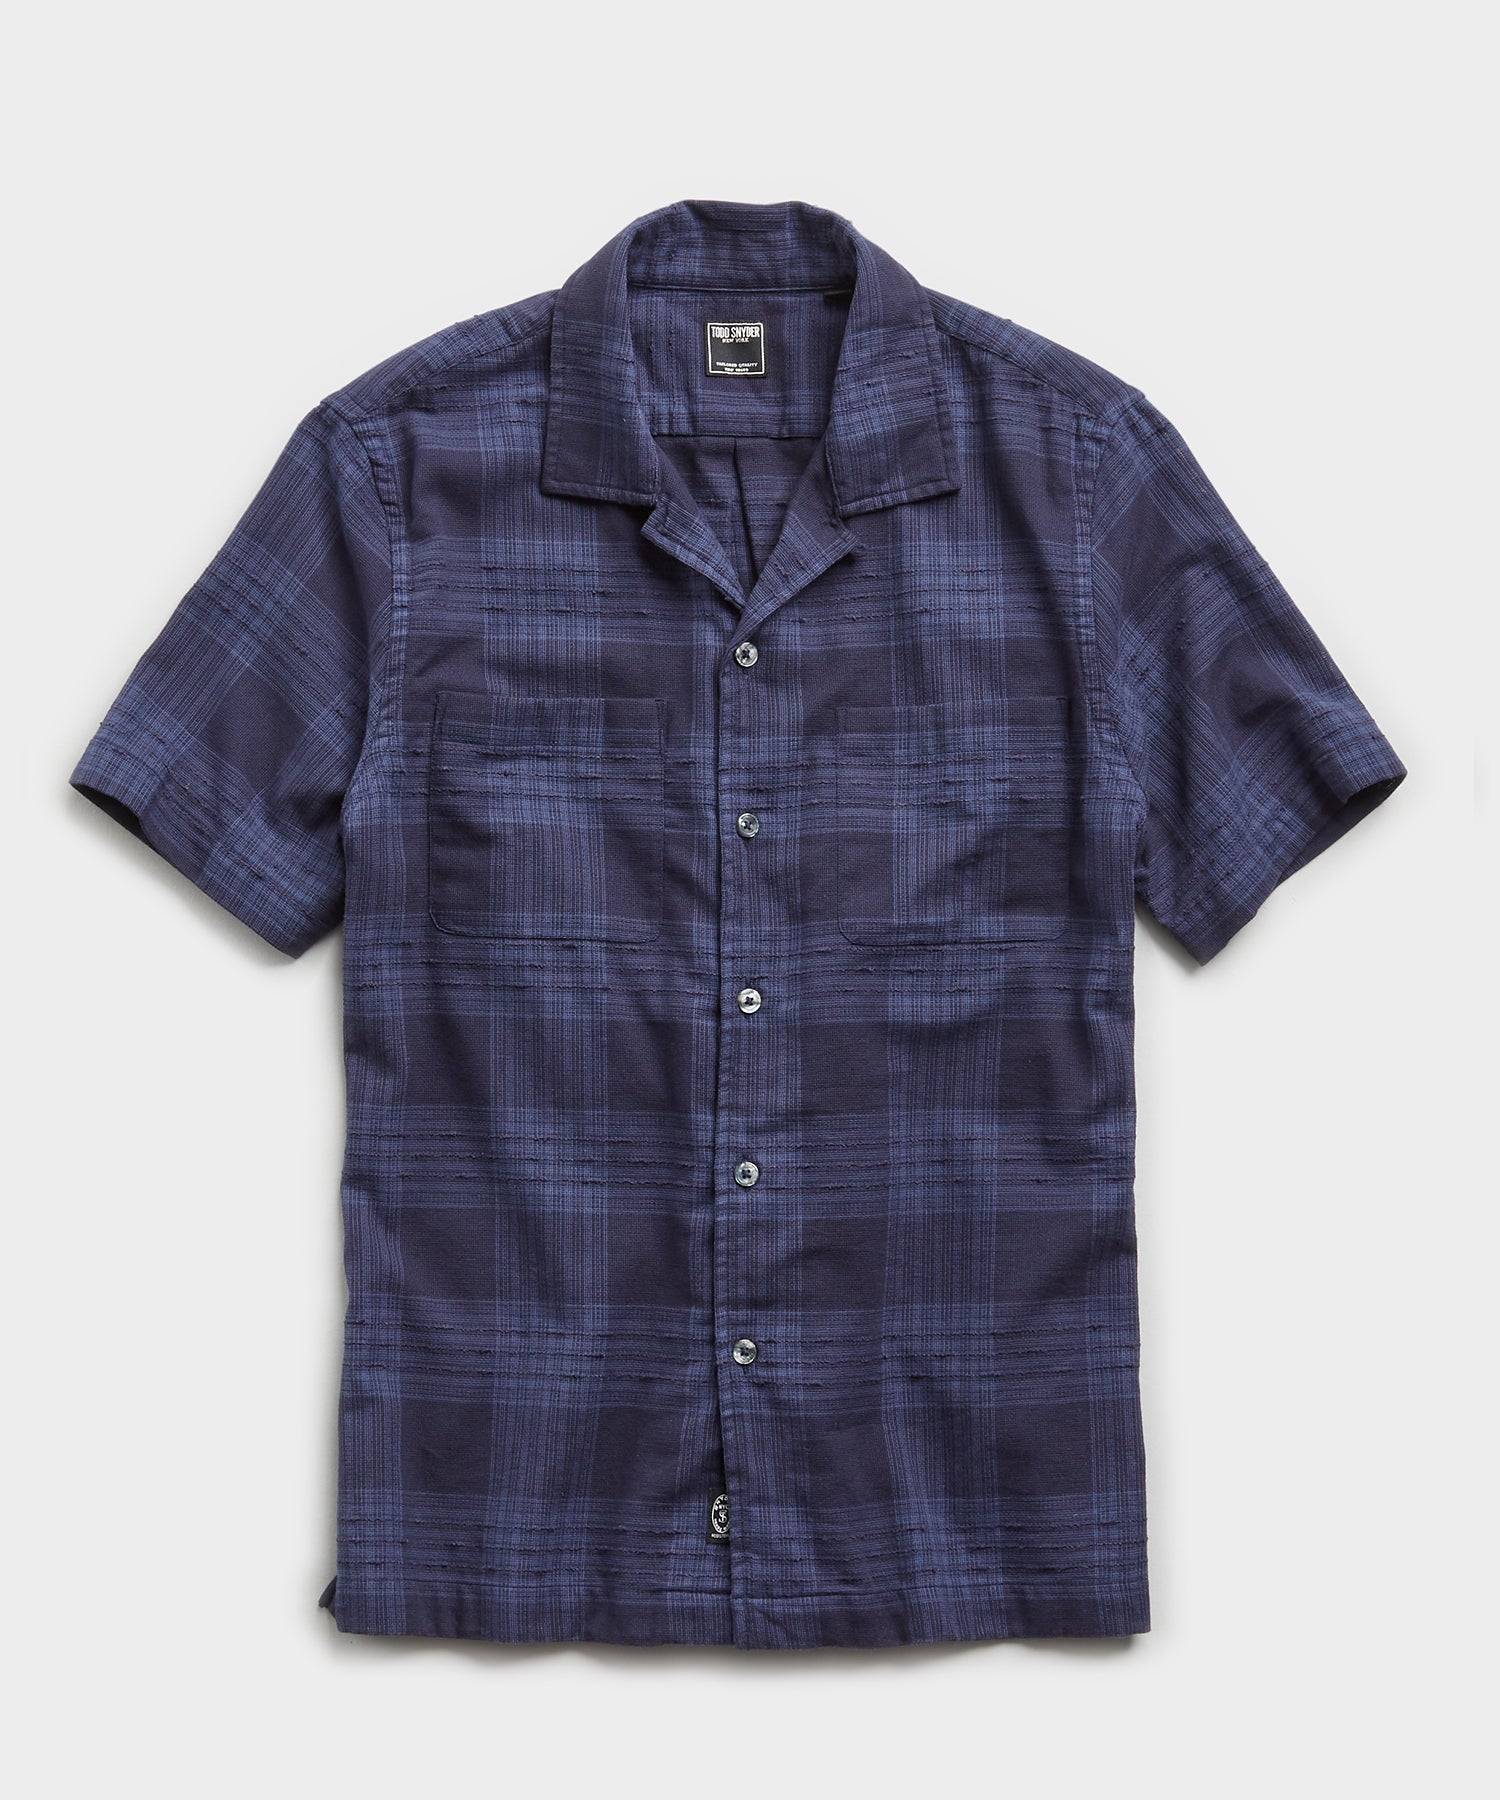 Portuguese Two Pocket Boucle Plaid Short Sleeve Shirt in Navy